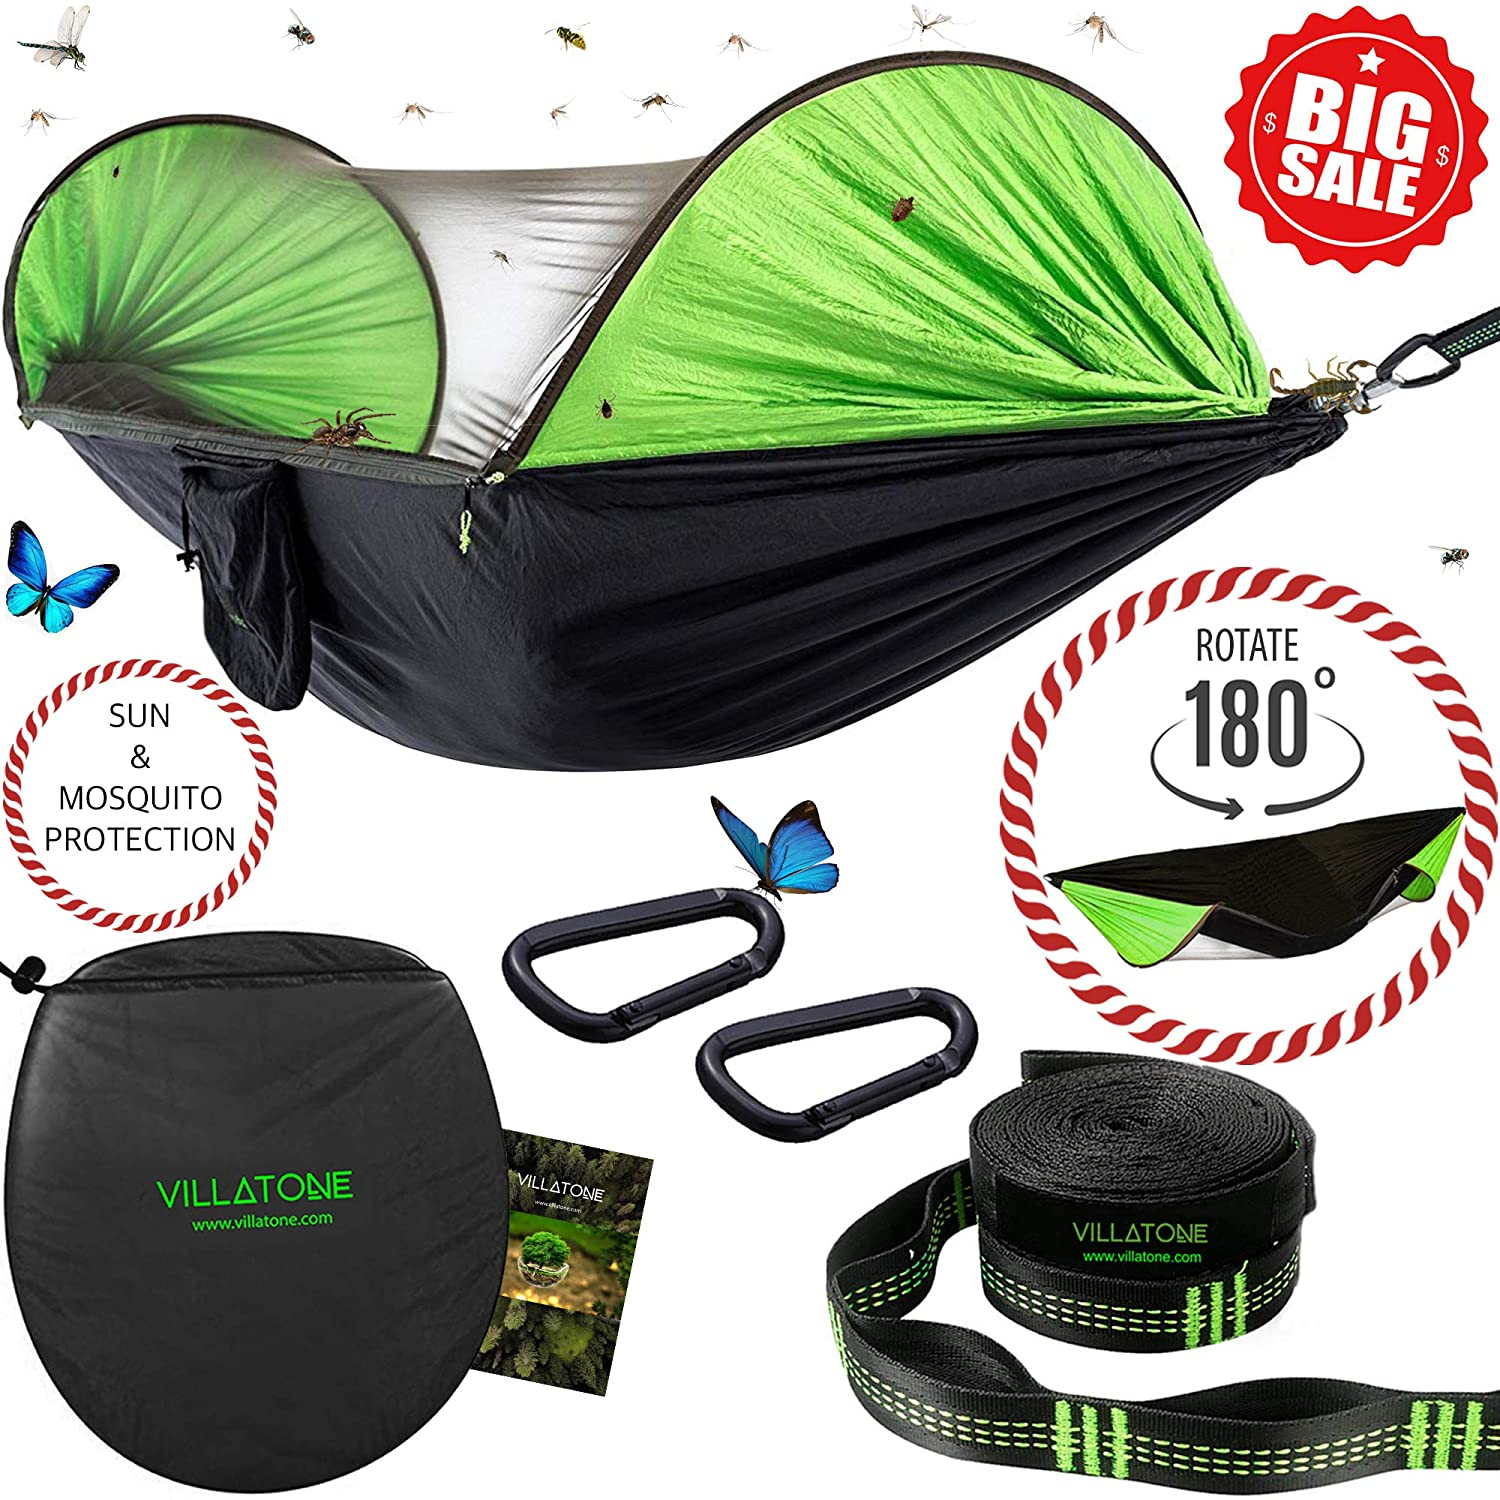 VILLATONE Camping Hammock with Mosquito Net. Easy Setup No-Ropes No-Knots Professional Straps and Carabiners . Lightweight Parachute Nylon Hanging Hammock with Bug Netting and Sun Shield